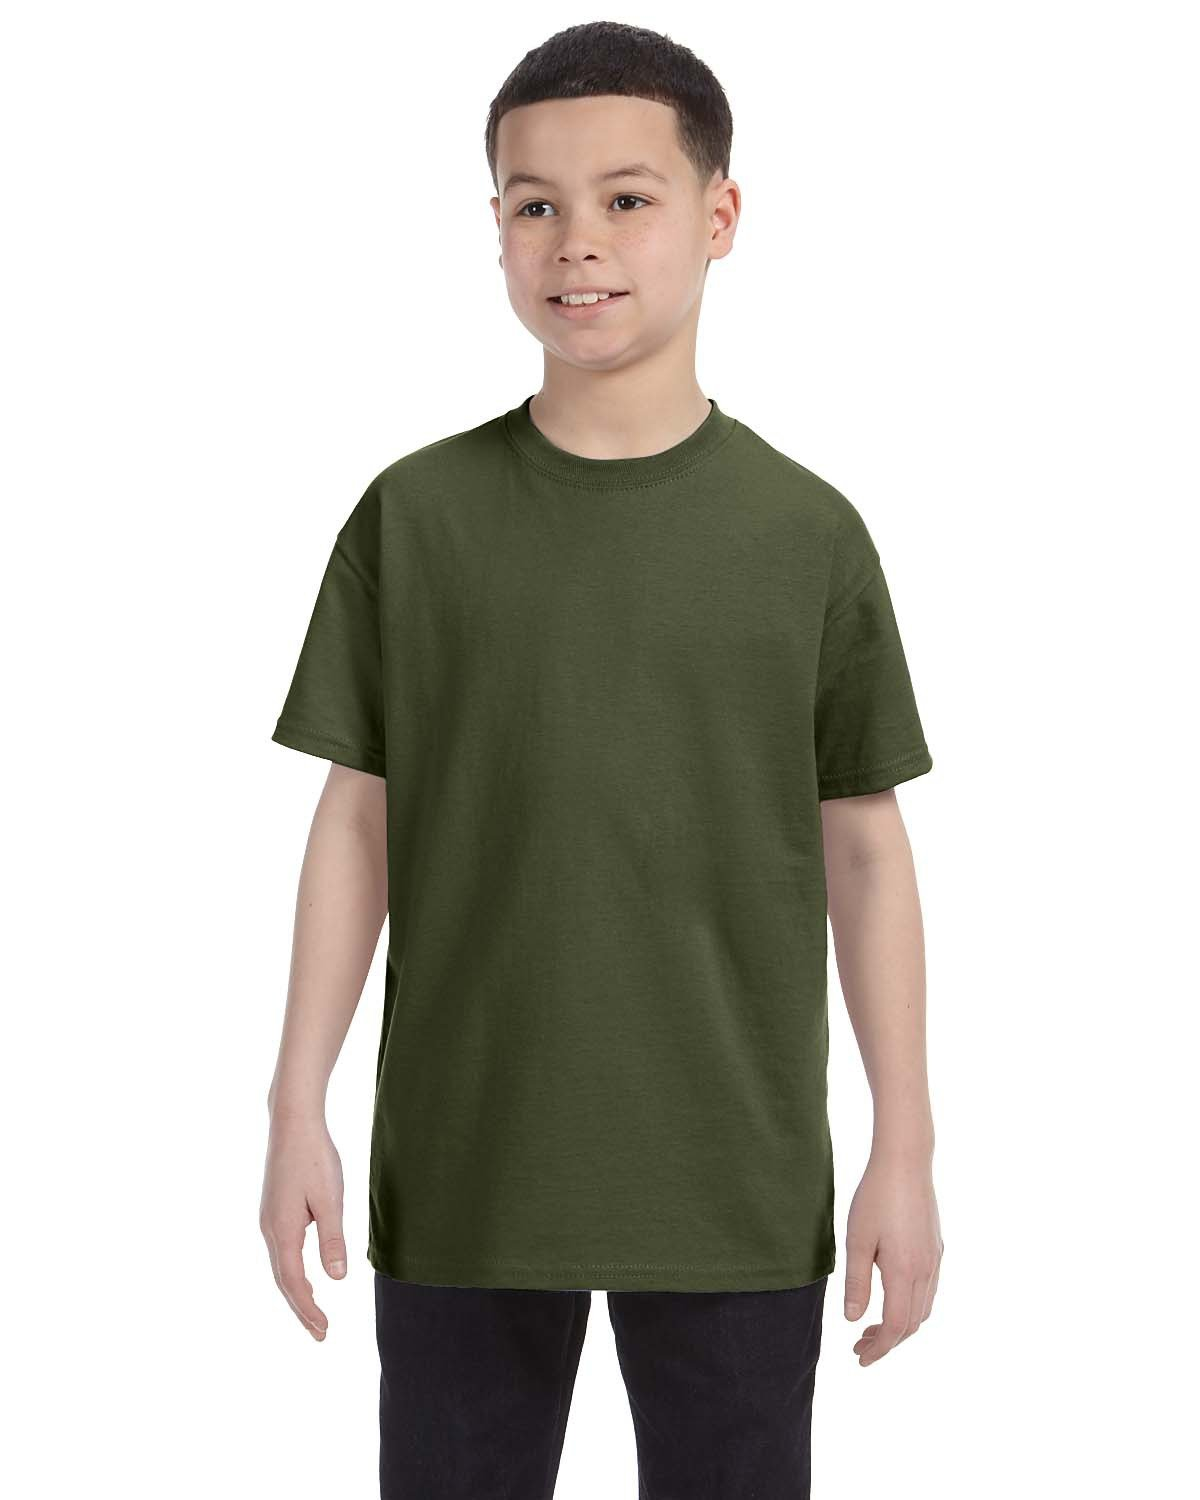 Jerzees Youth DRI-POWER® ACTIVE T-Shirt MILITARY GREEN